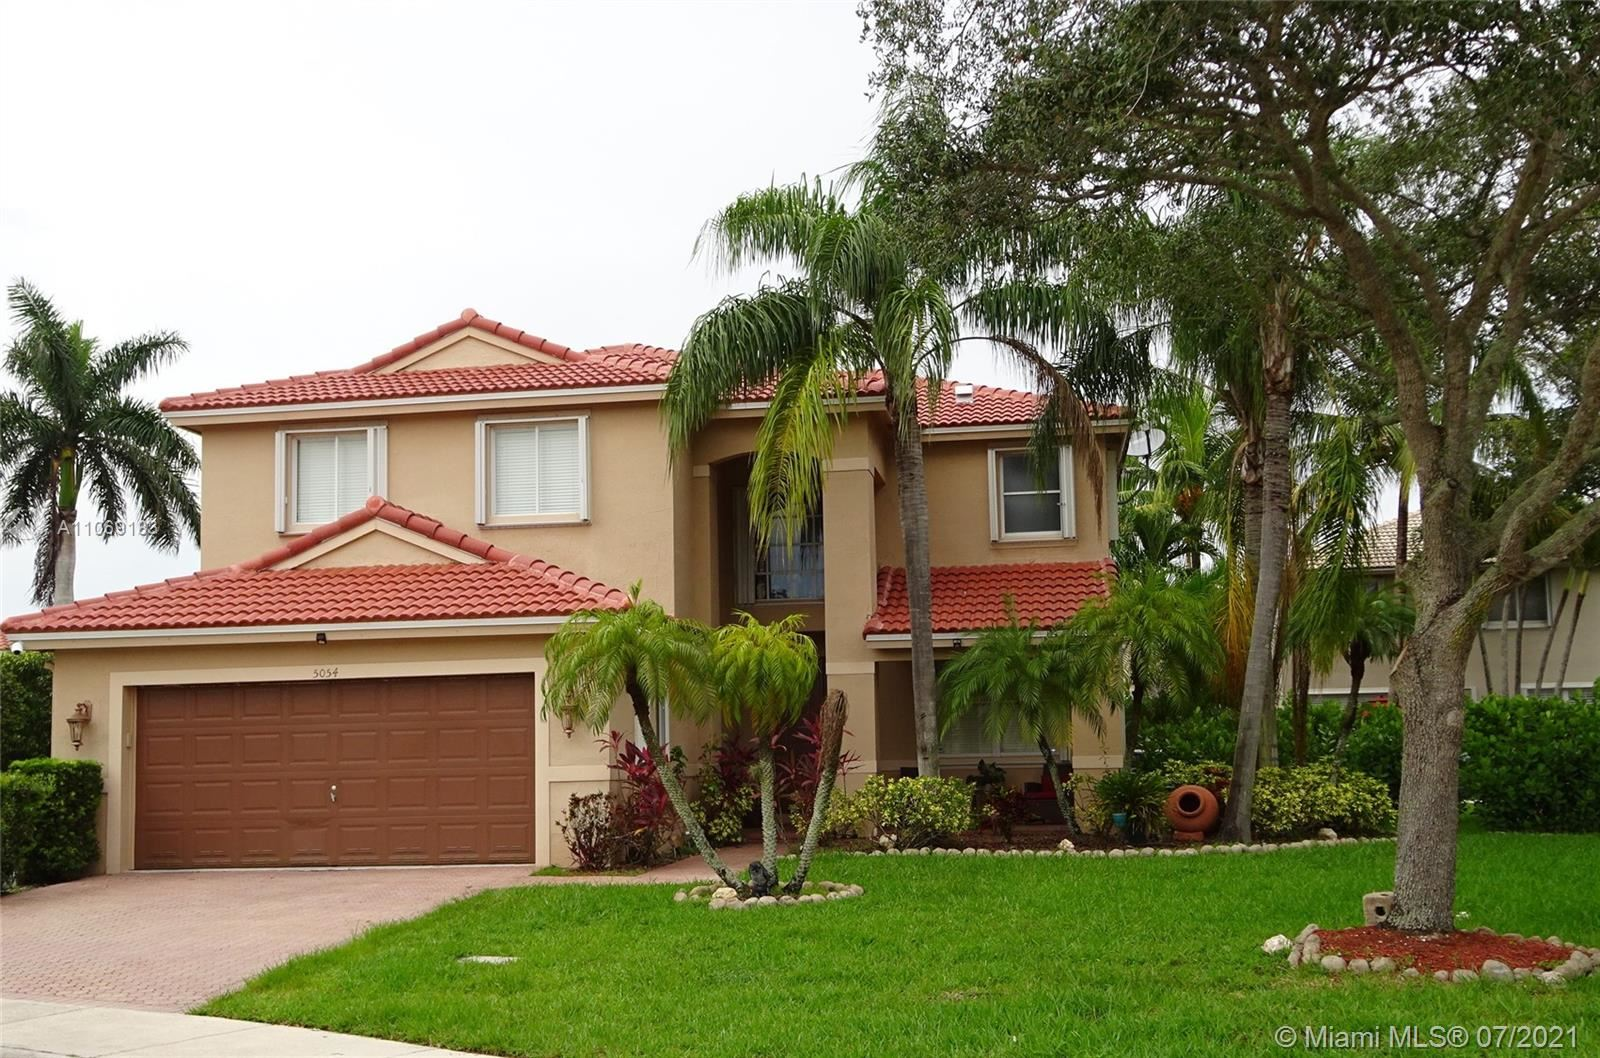 5054 NW 121st Dr, Coral Springs, FL 33076 - #: A11069183